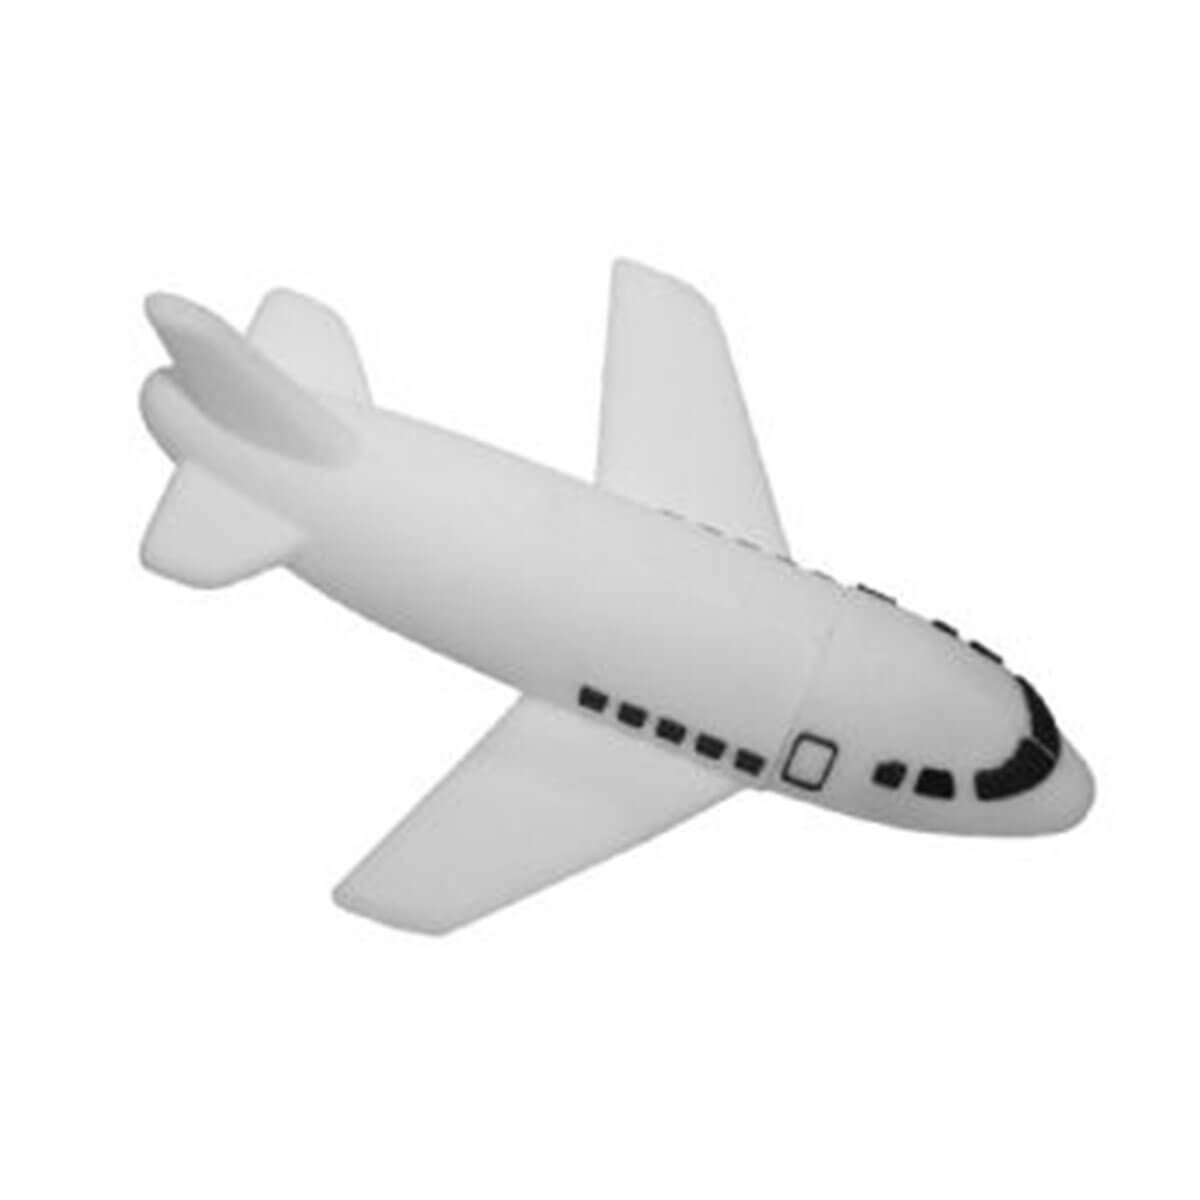 Plane PVC Flash Drive-You can change up to 2 of the base PVC colours and print your logo in 1-2 colours in 1 position.